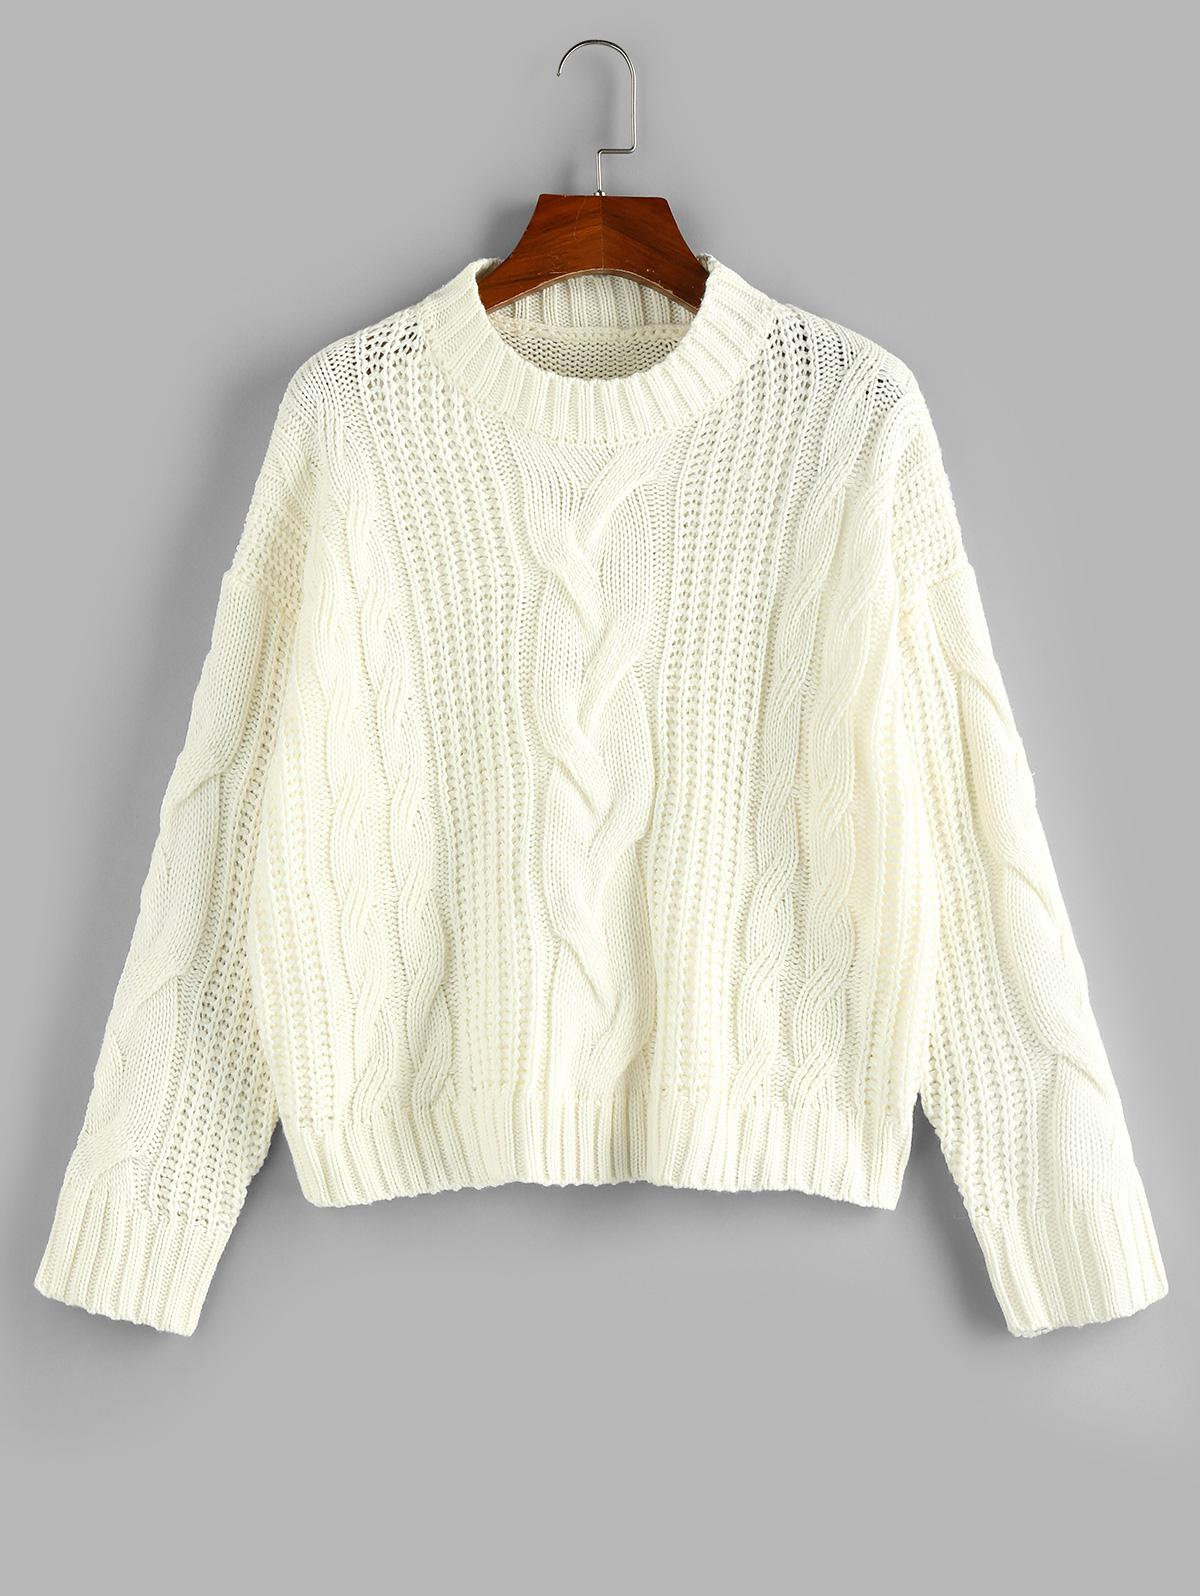 Zaful Cable Knit Drop Shoulder Sweater